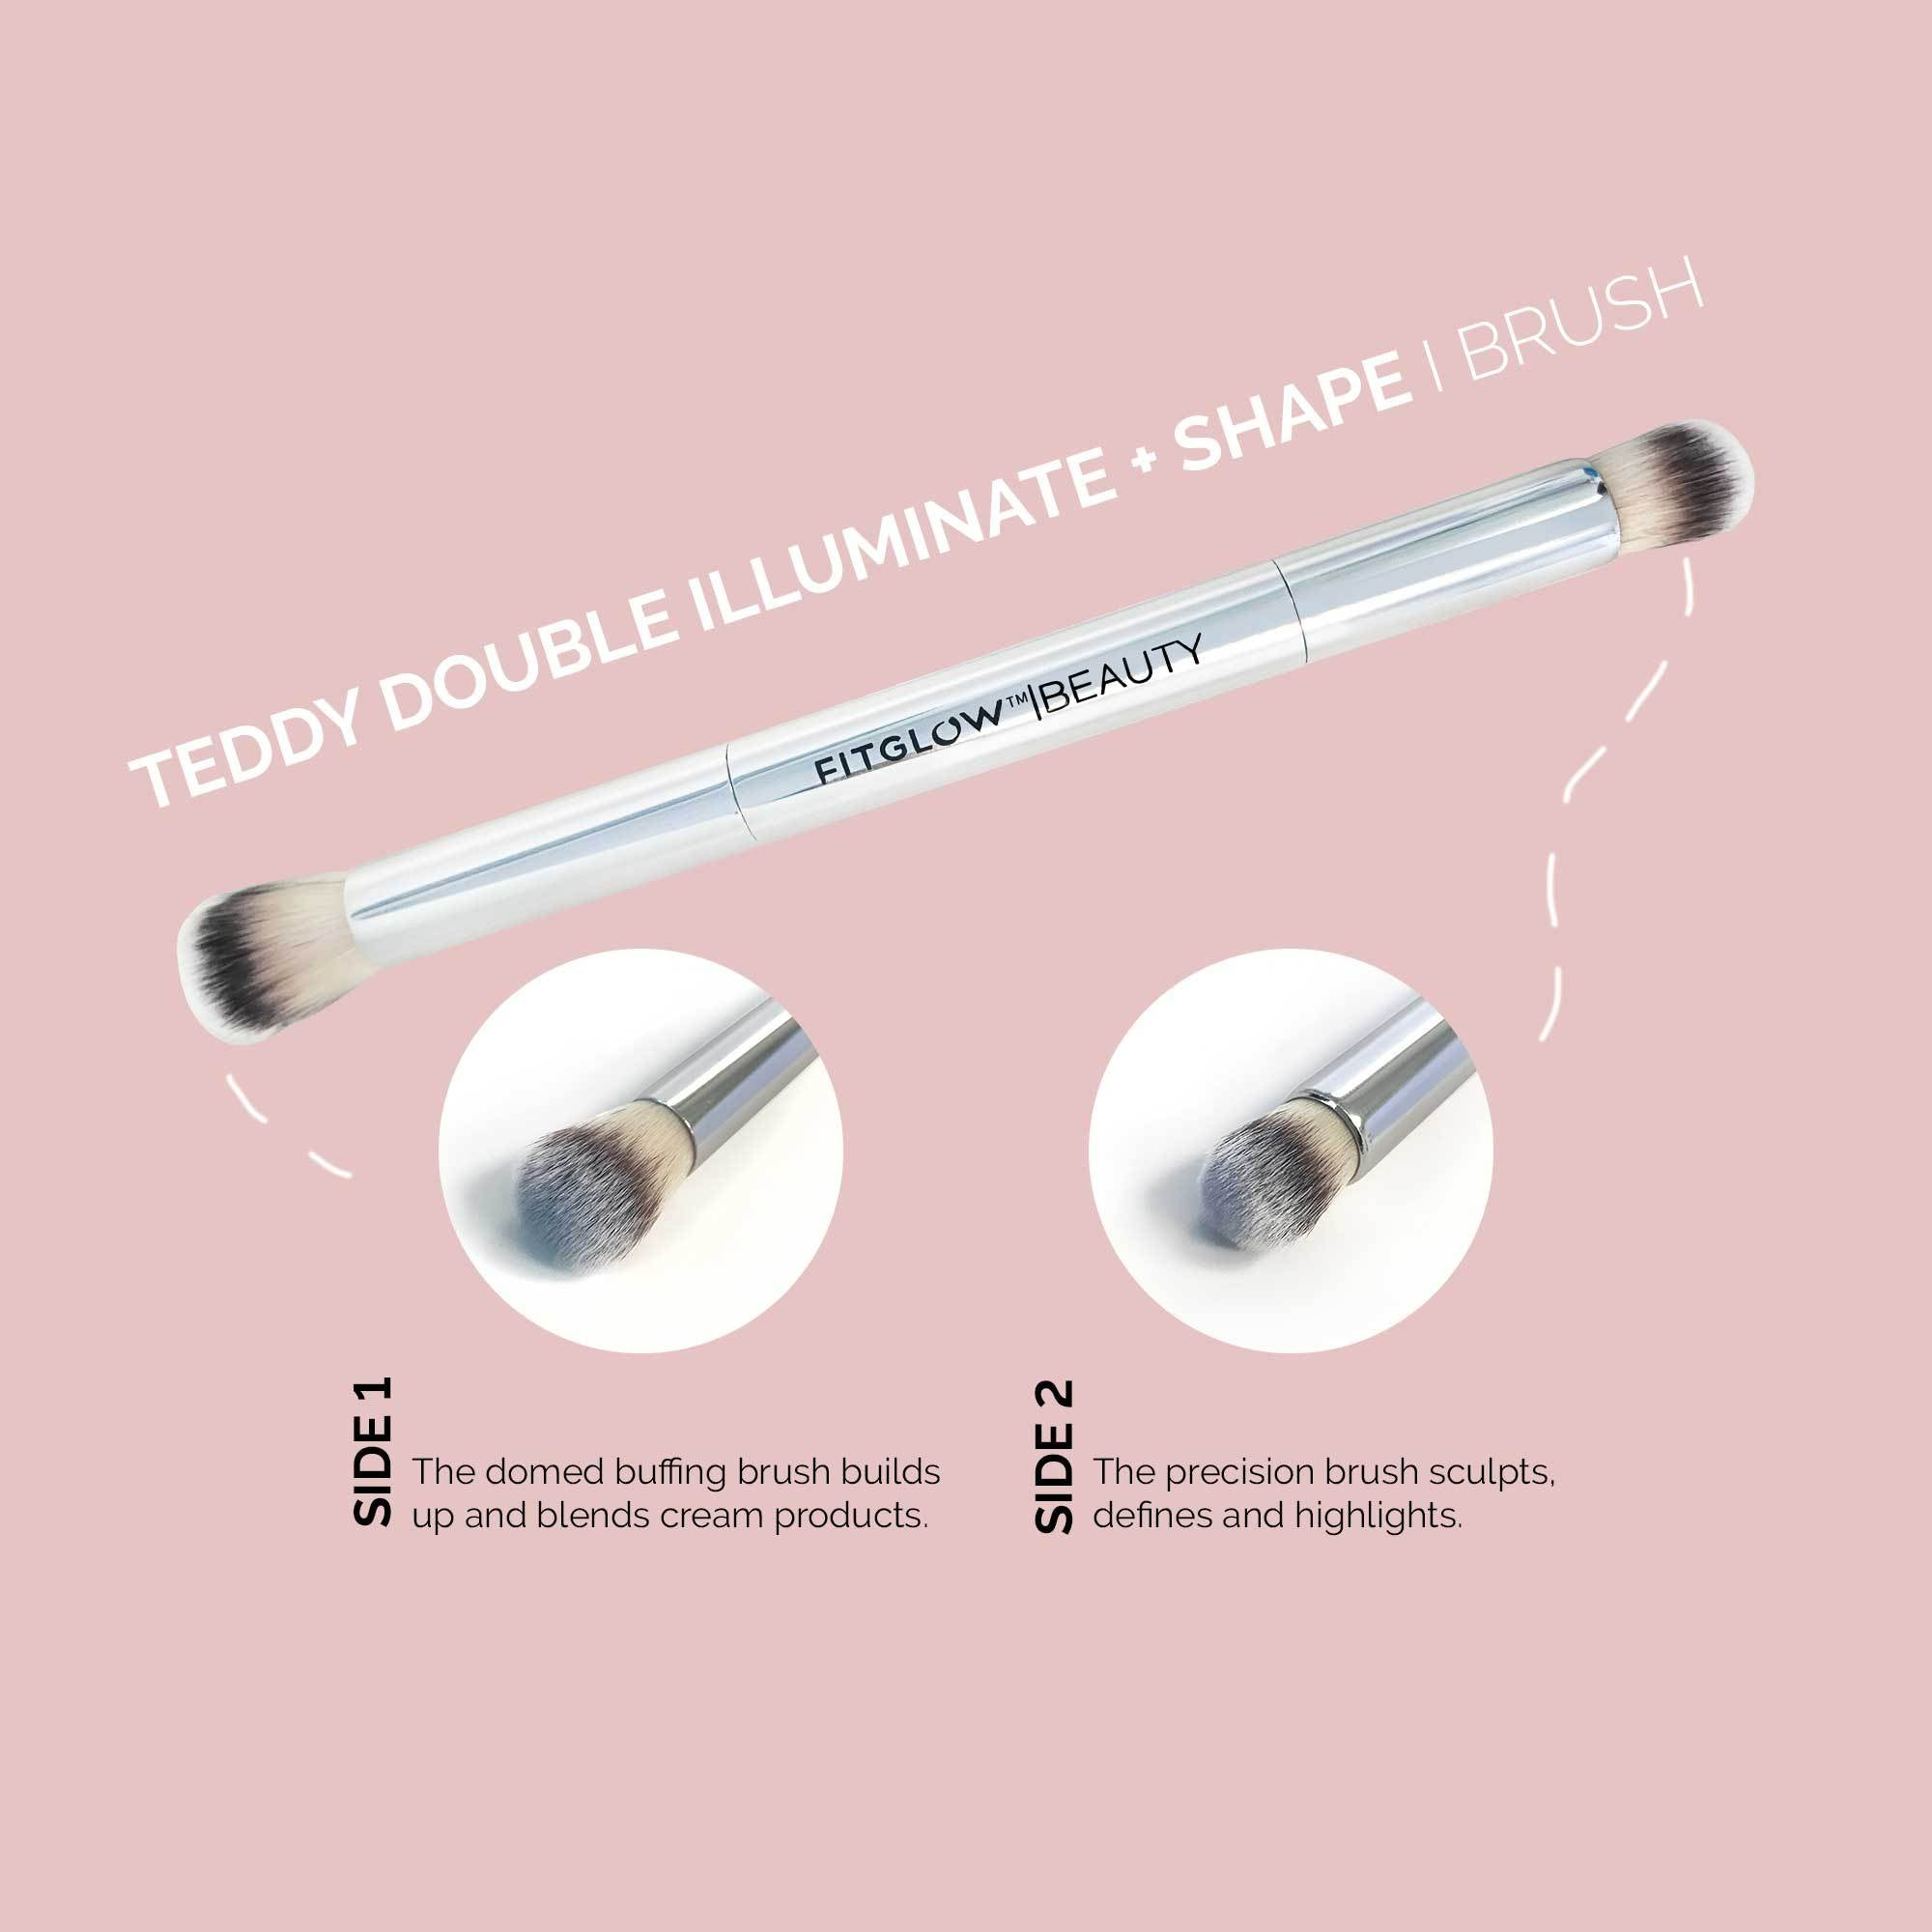 Vegan Teddy Double Illuminate + Shape Brush